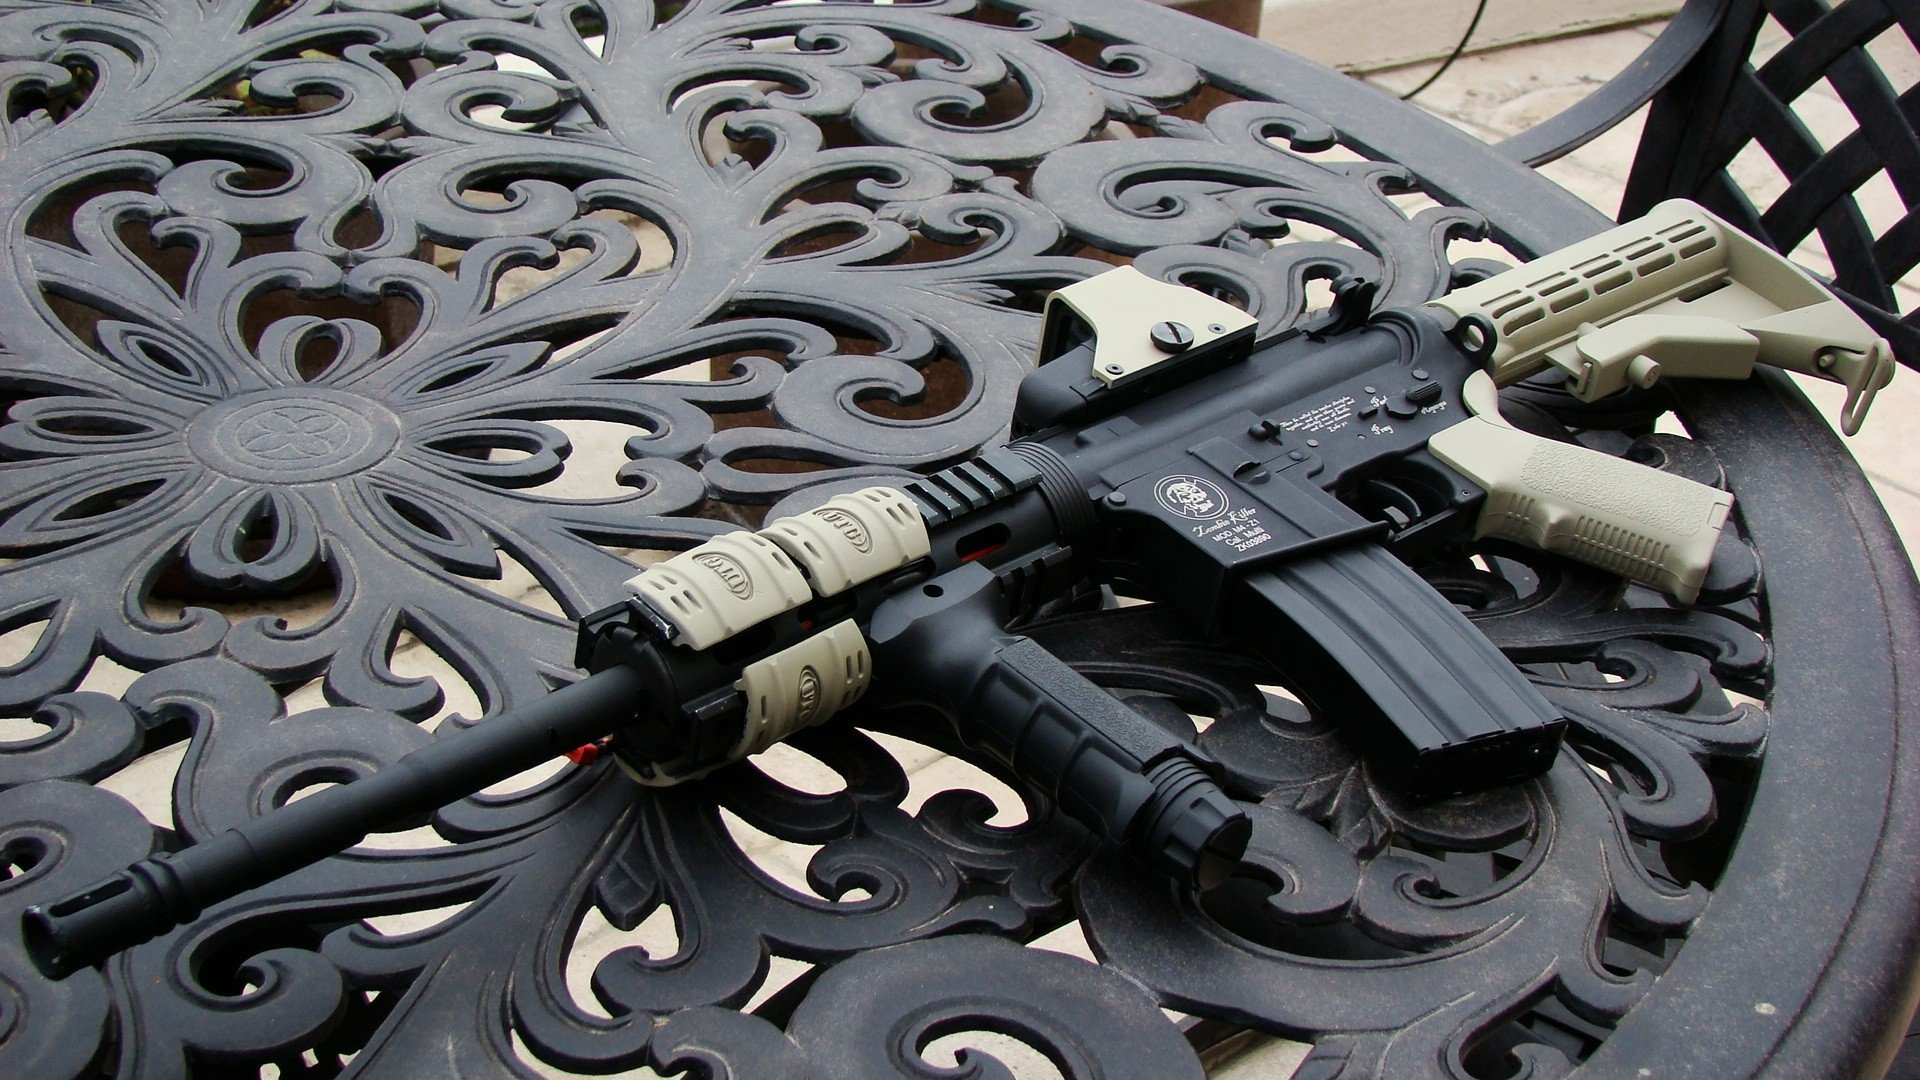 Weapons - Assault Rifle  Wallpaper